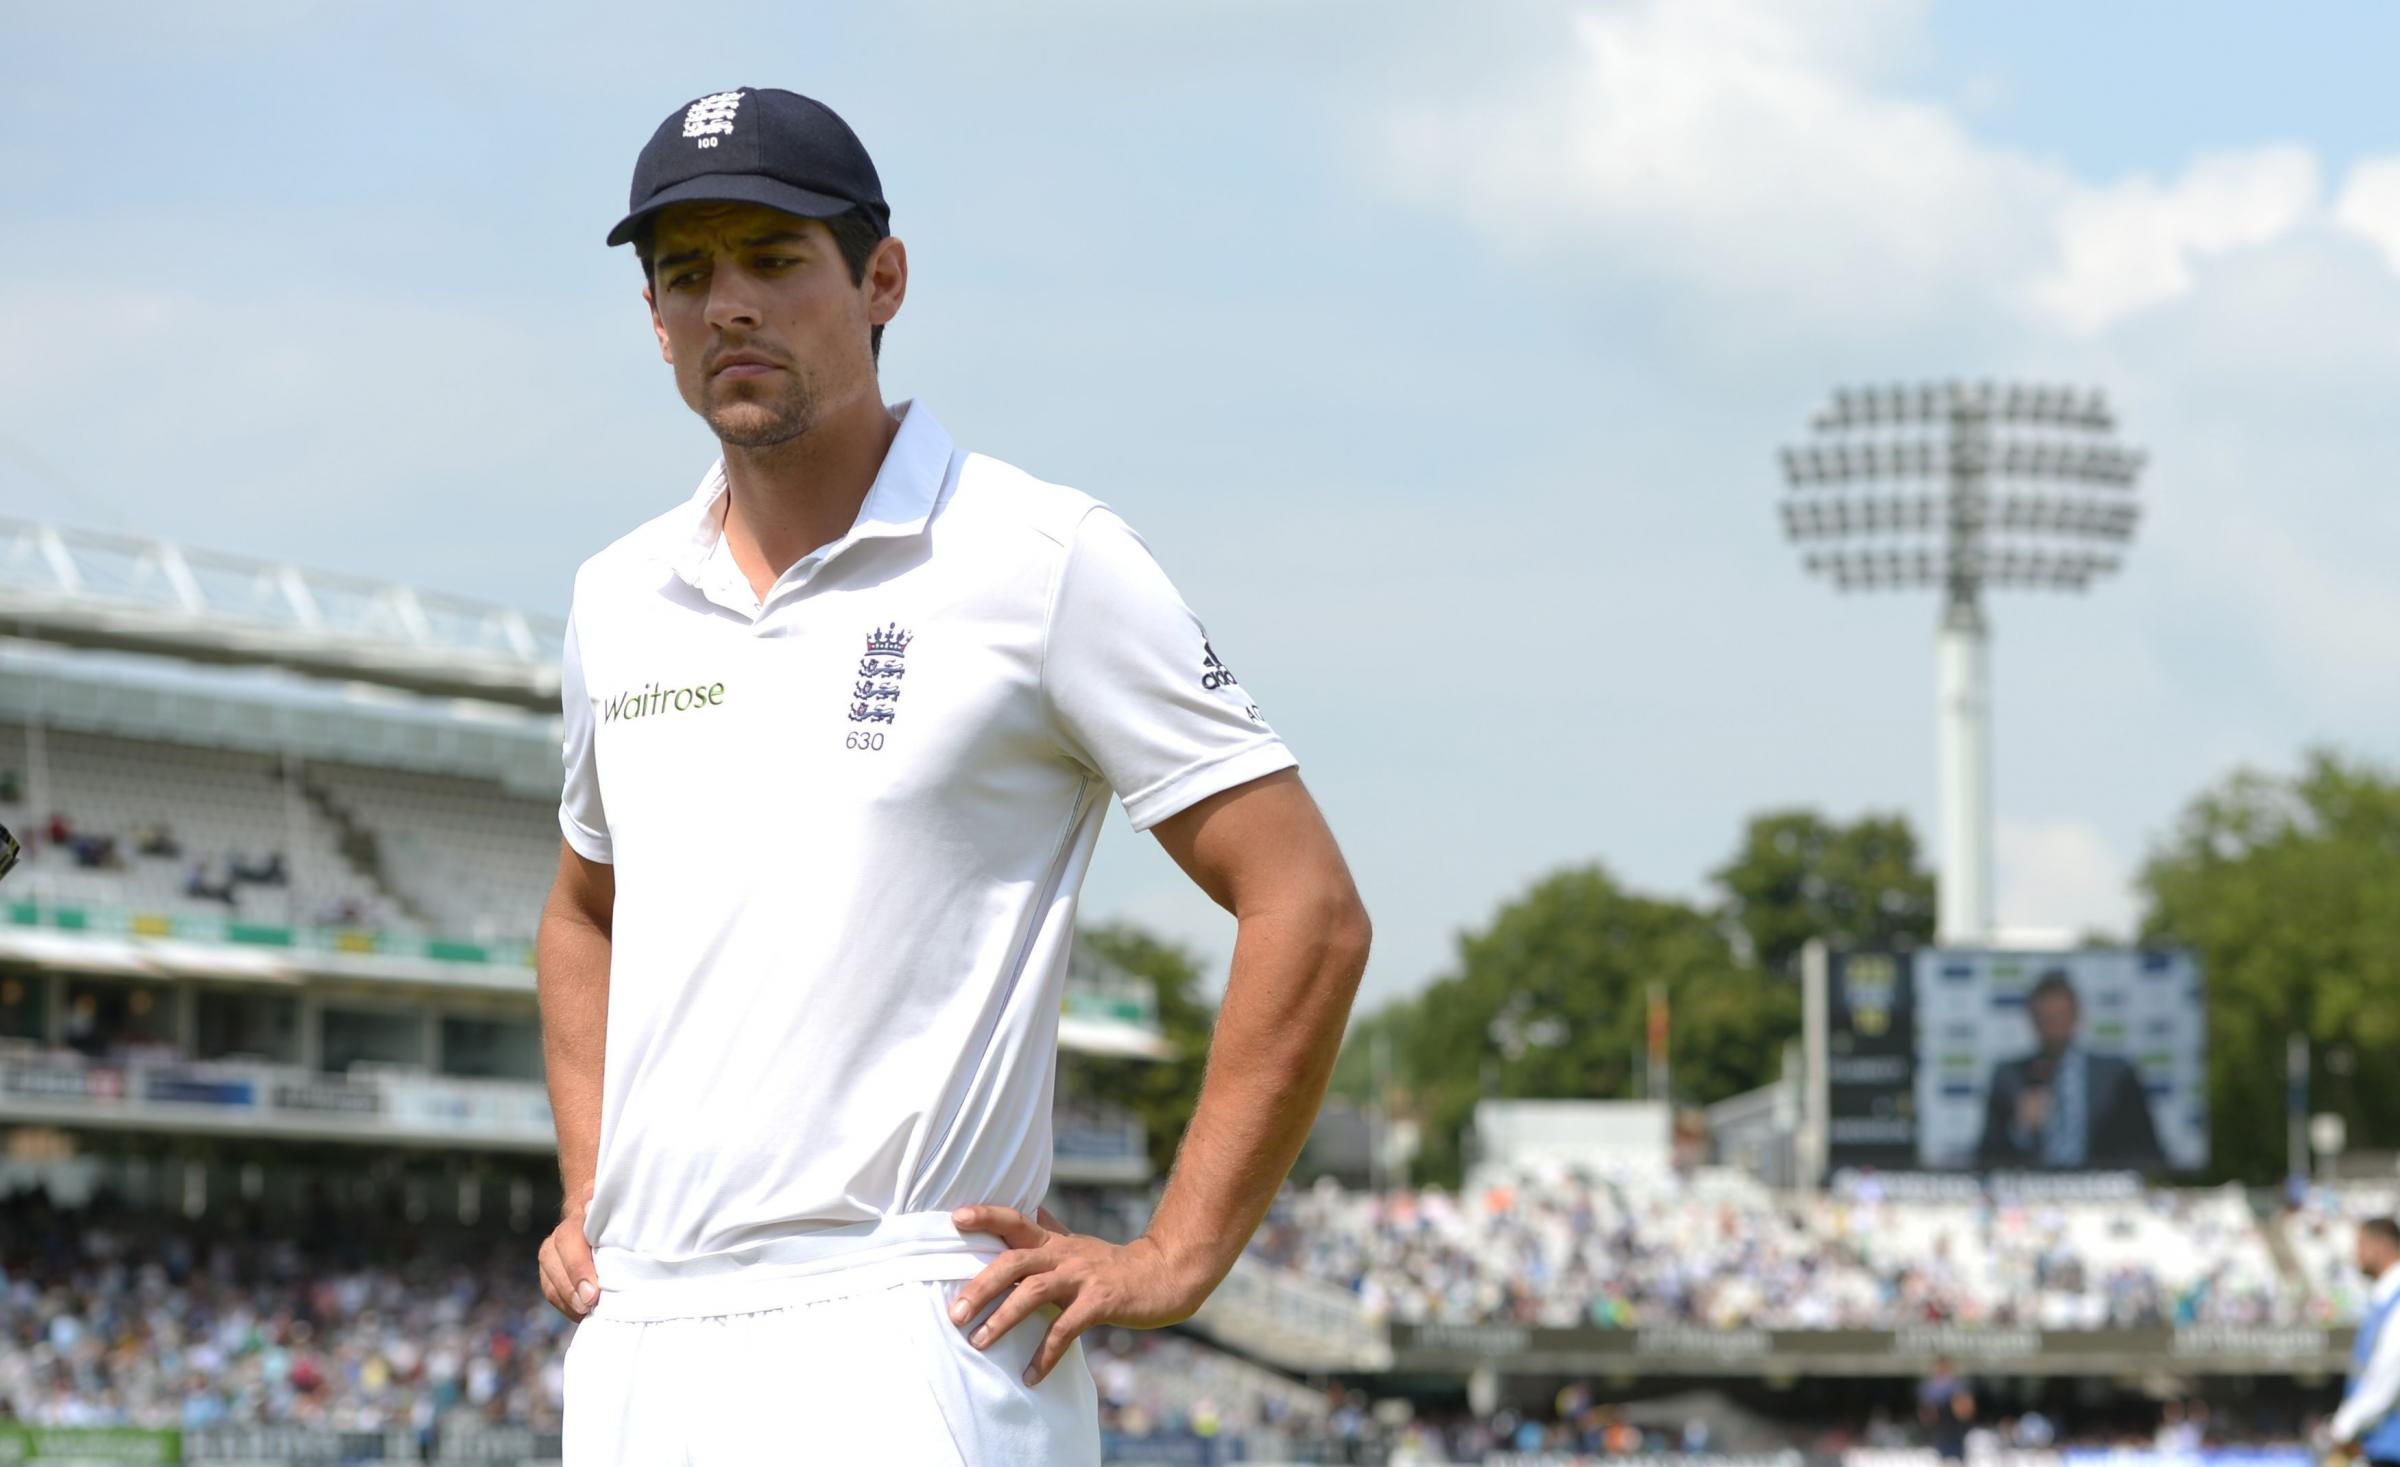 England's Alastair Cook appears dejected after India's victory during day five of the second test at Lord's Cricket Ground, London. PRESS ASSOCIATION Photo. Picture date Monday July 21, 2014. See PA Story CRICKET England. Photo credit should r